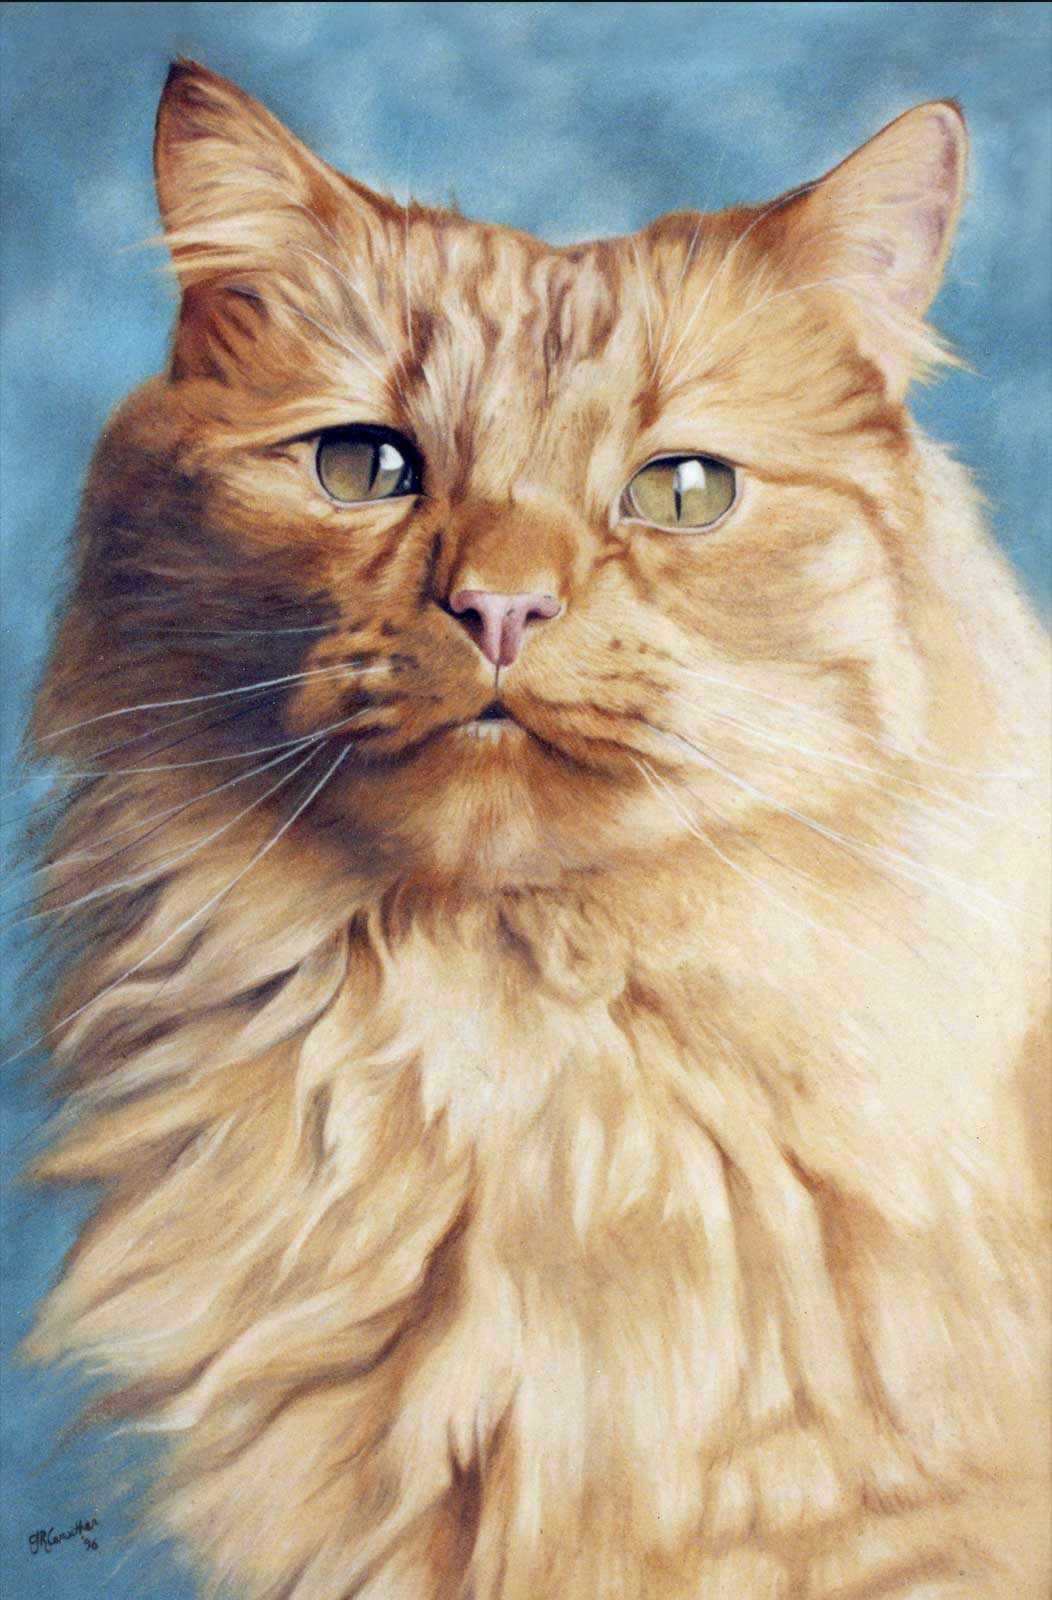 Cat portrait, oil painting on canvas